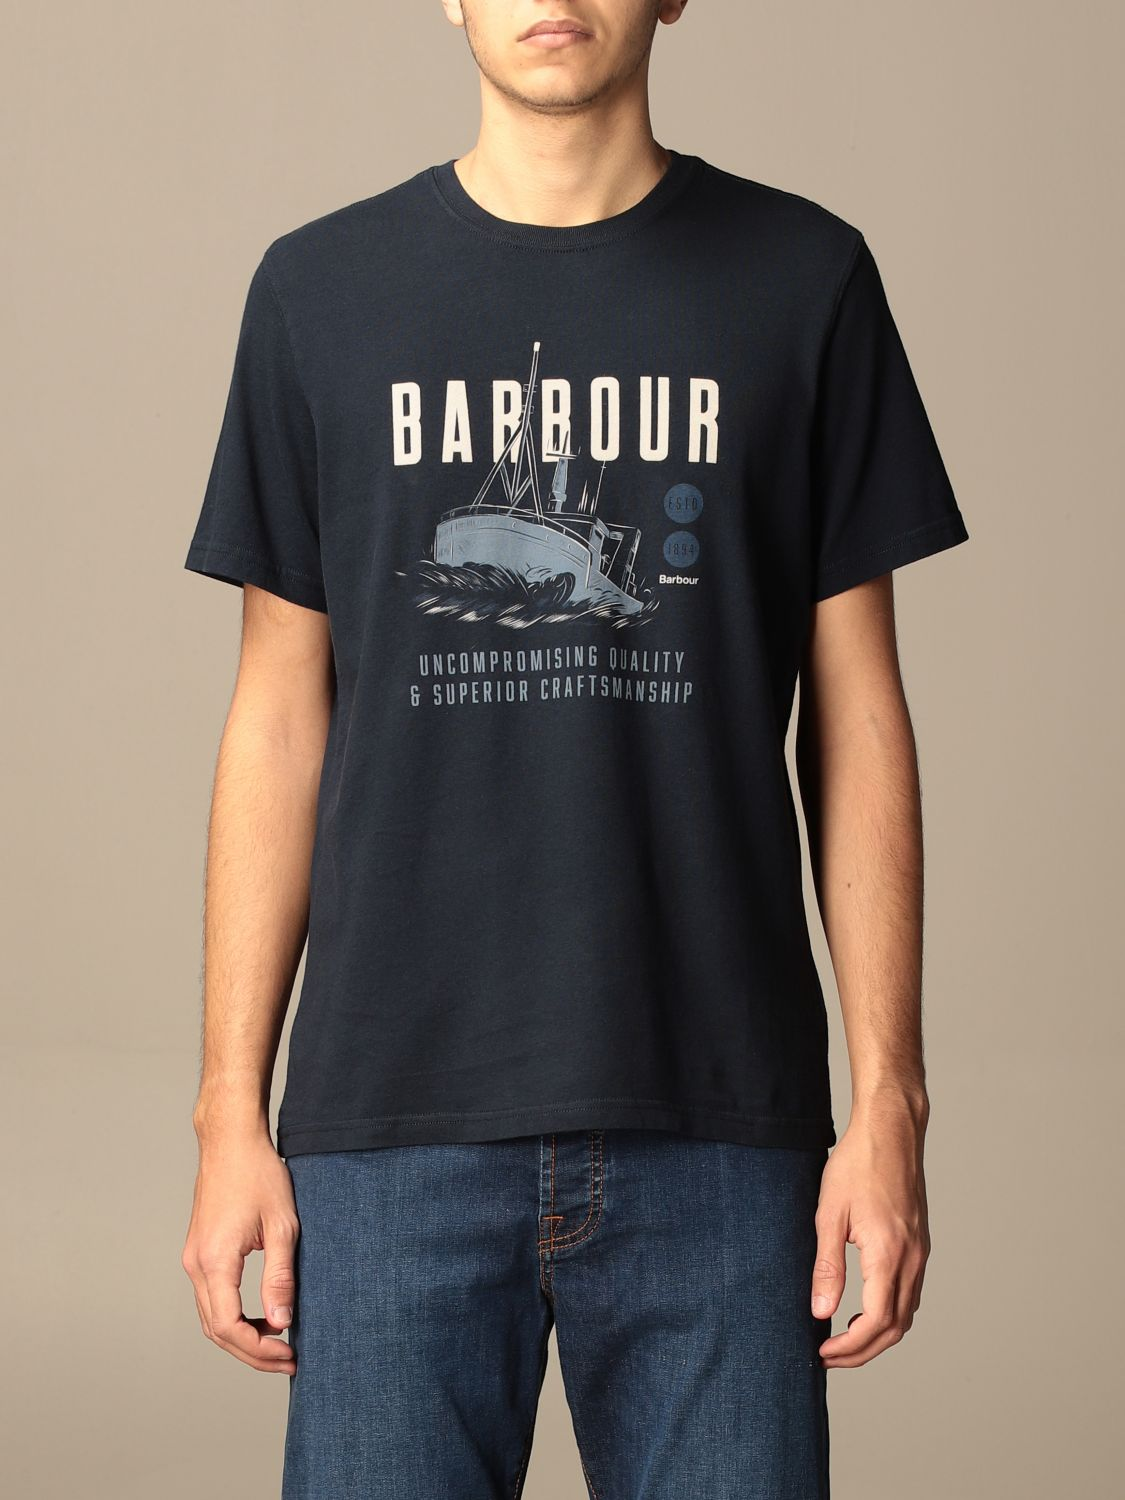 T-shirt Barbour: T-shirt Barbour in cotone con stampa blue navy 1